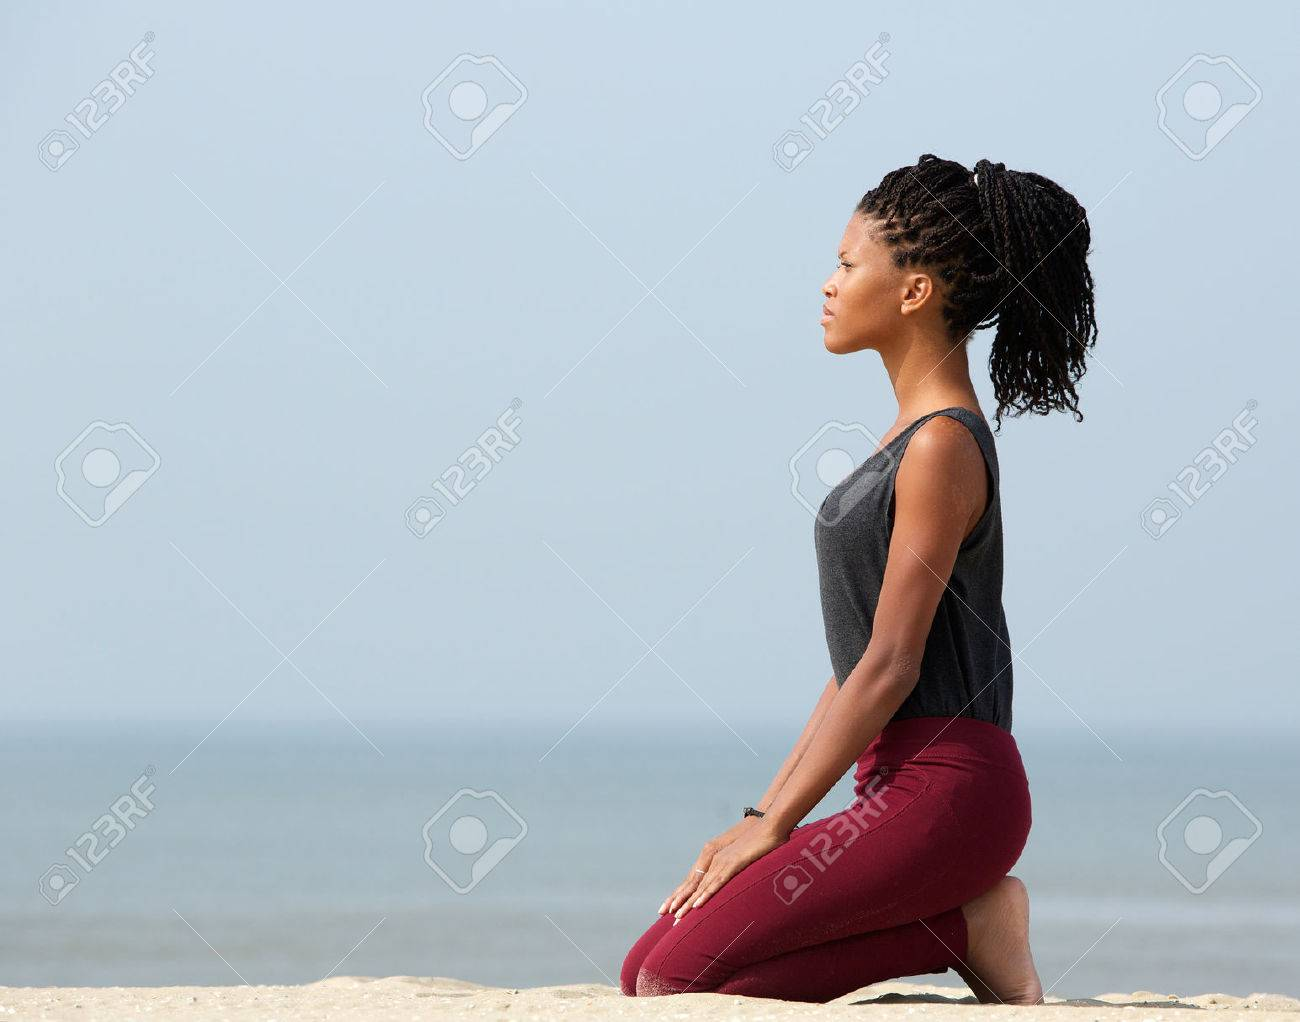 side view portrait of a young woman meditating at the seaside stock